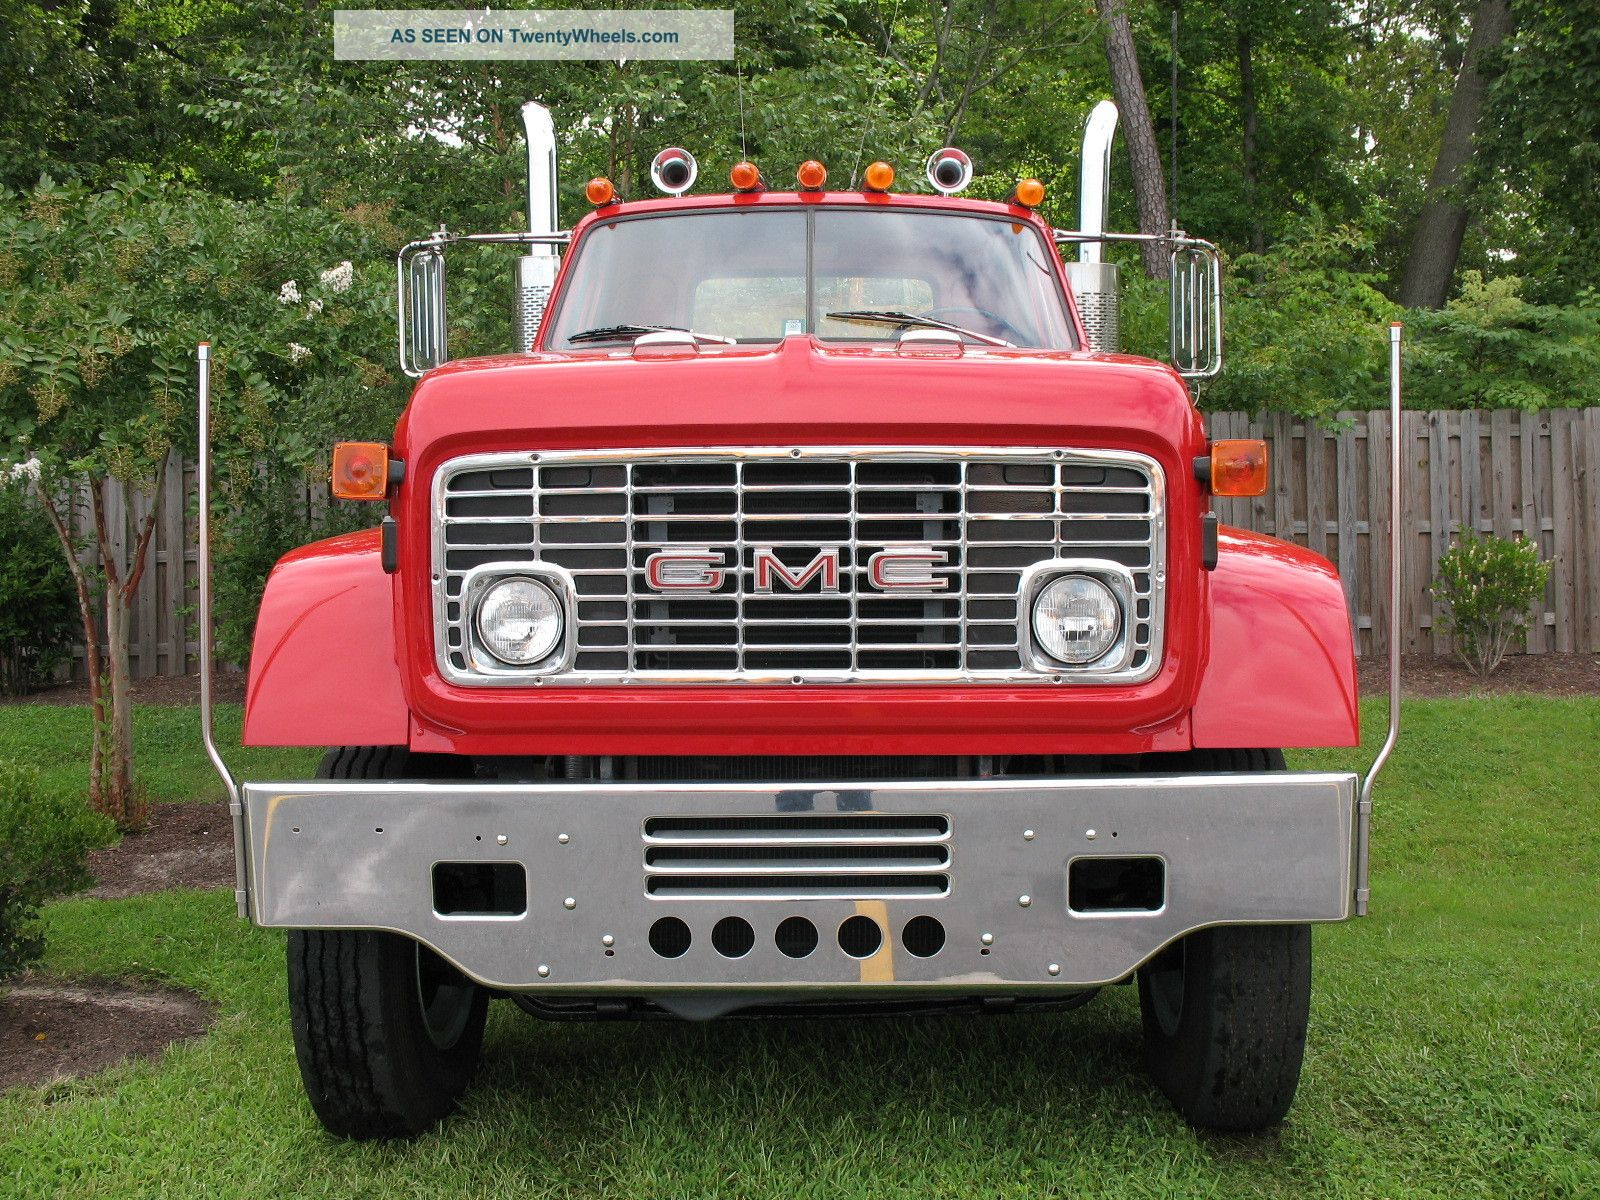 1973 Gmc Mh9500 Daycab Semi Trucks photo